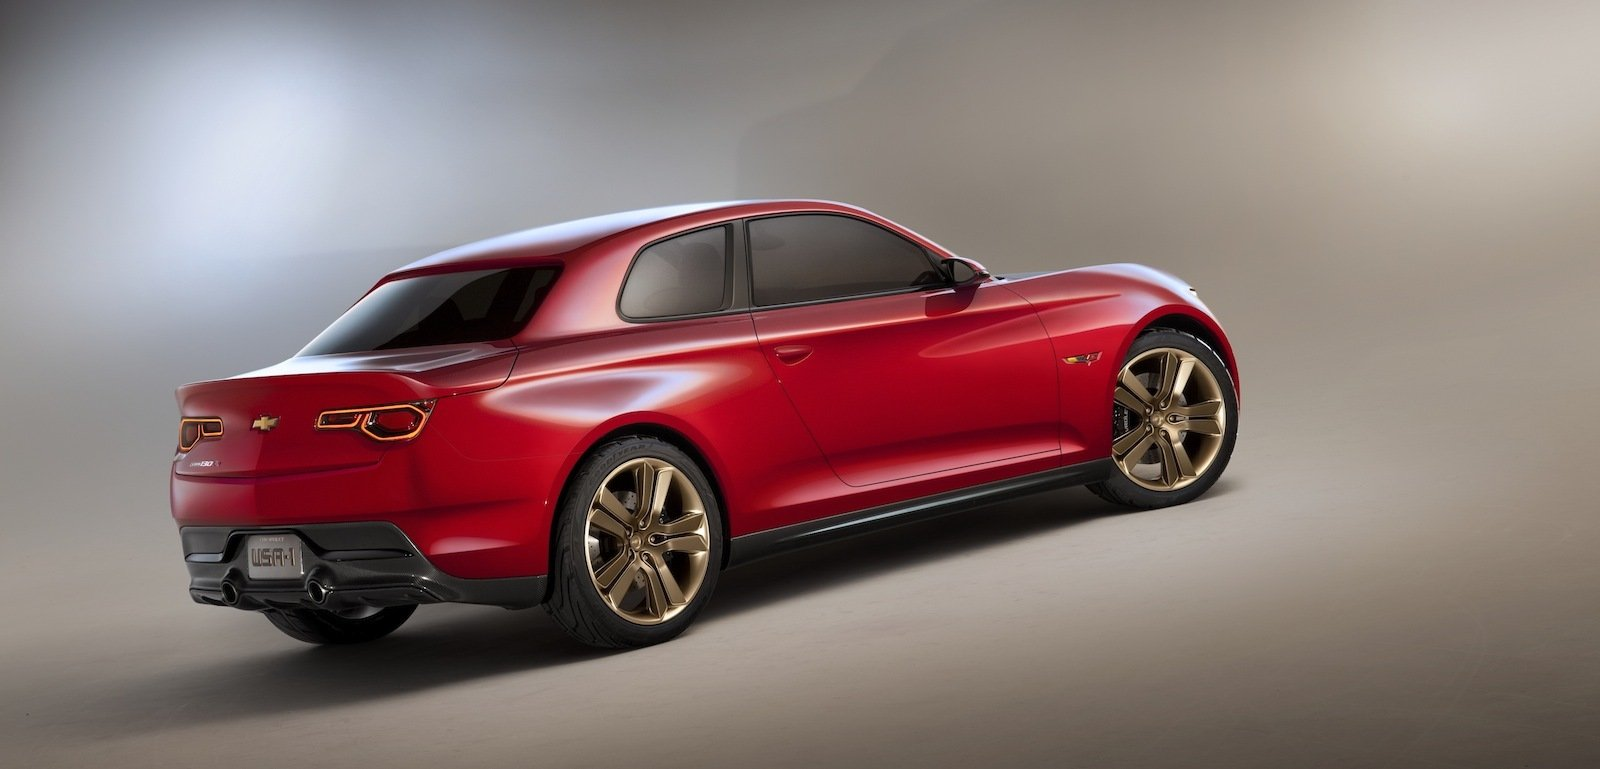 http://pictures.topspeed.com/IMG/crop/201201/chevrolet-code-130r--1_1600x0w.jpg